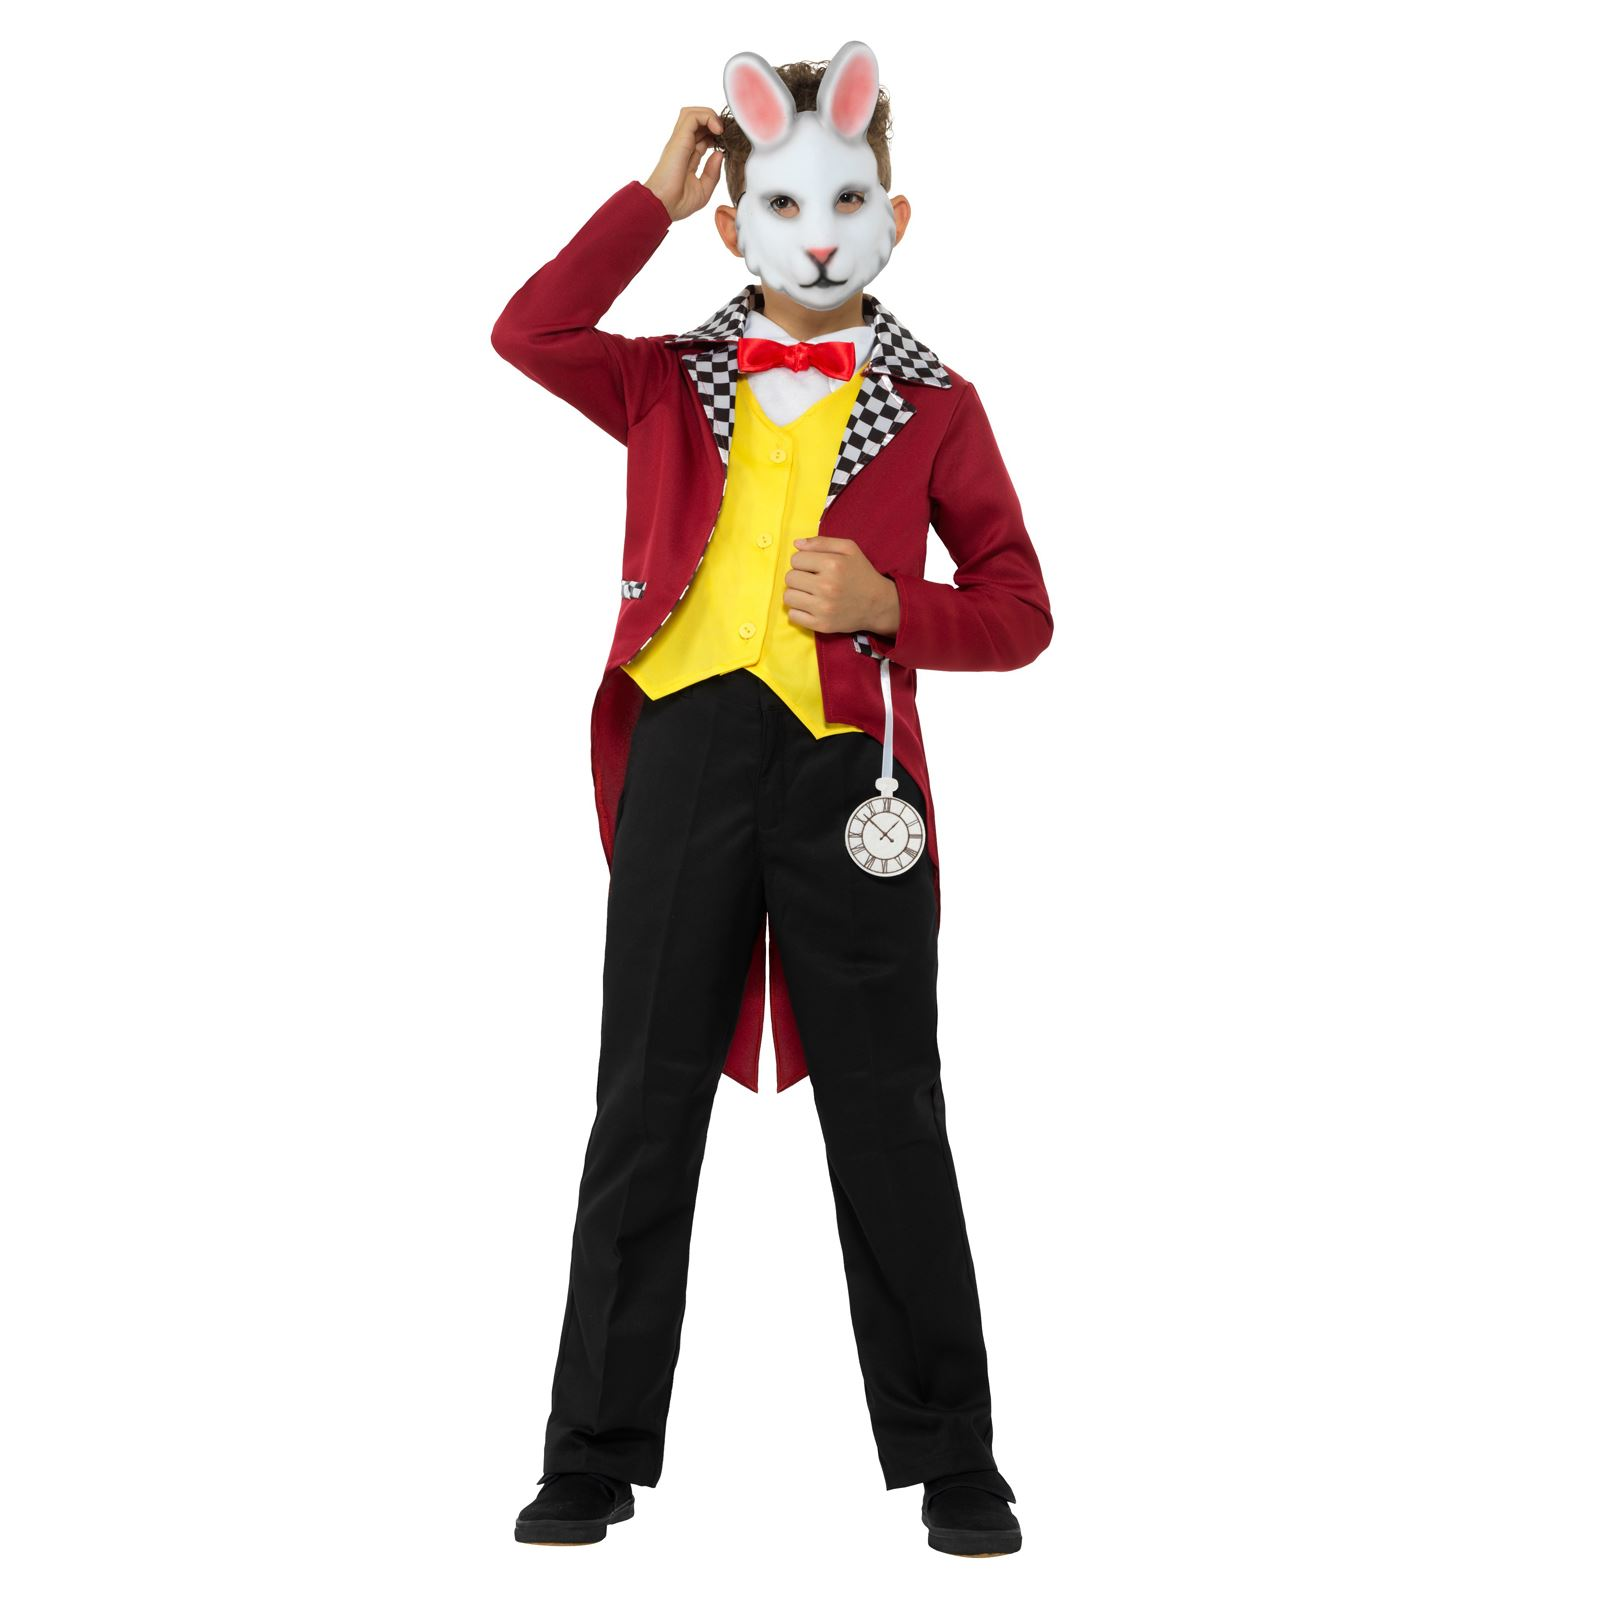 BUNNY COSTUME KIT (CHILD) from American Carnival Mart